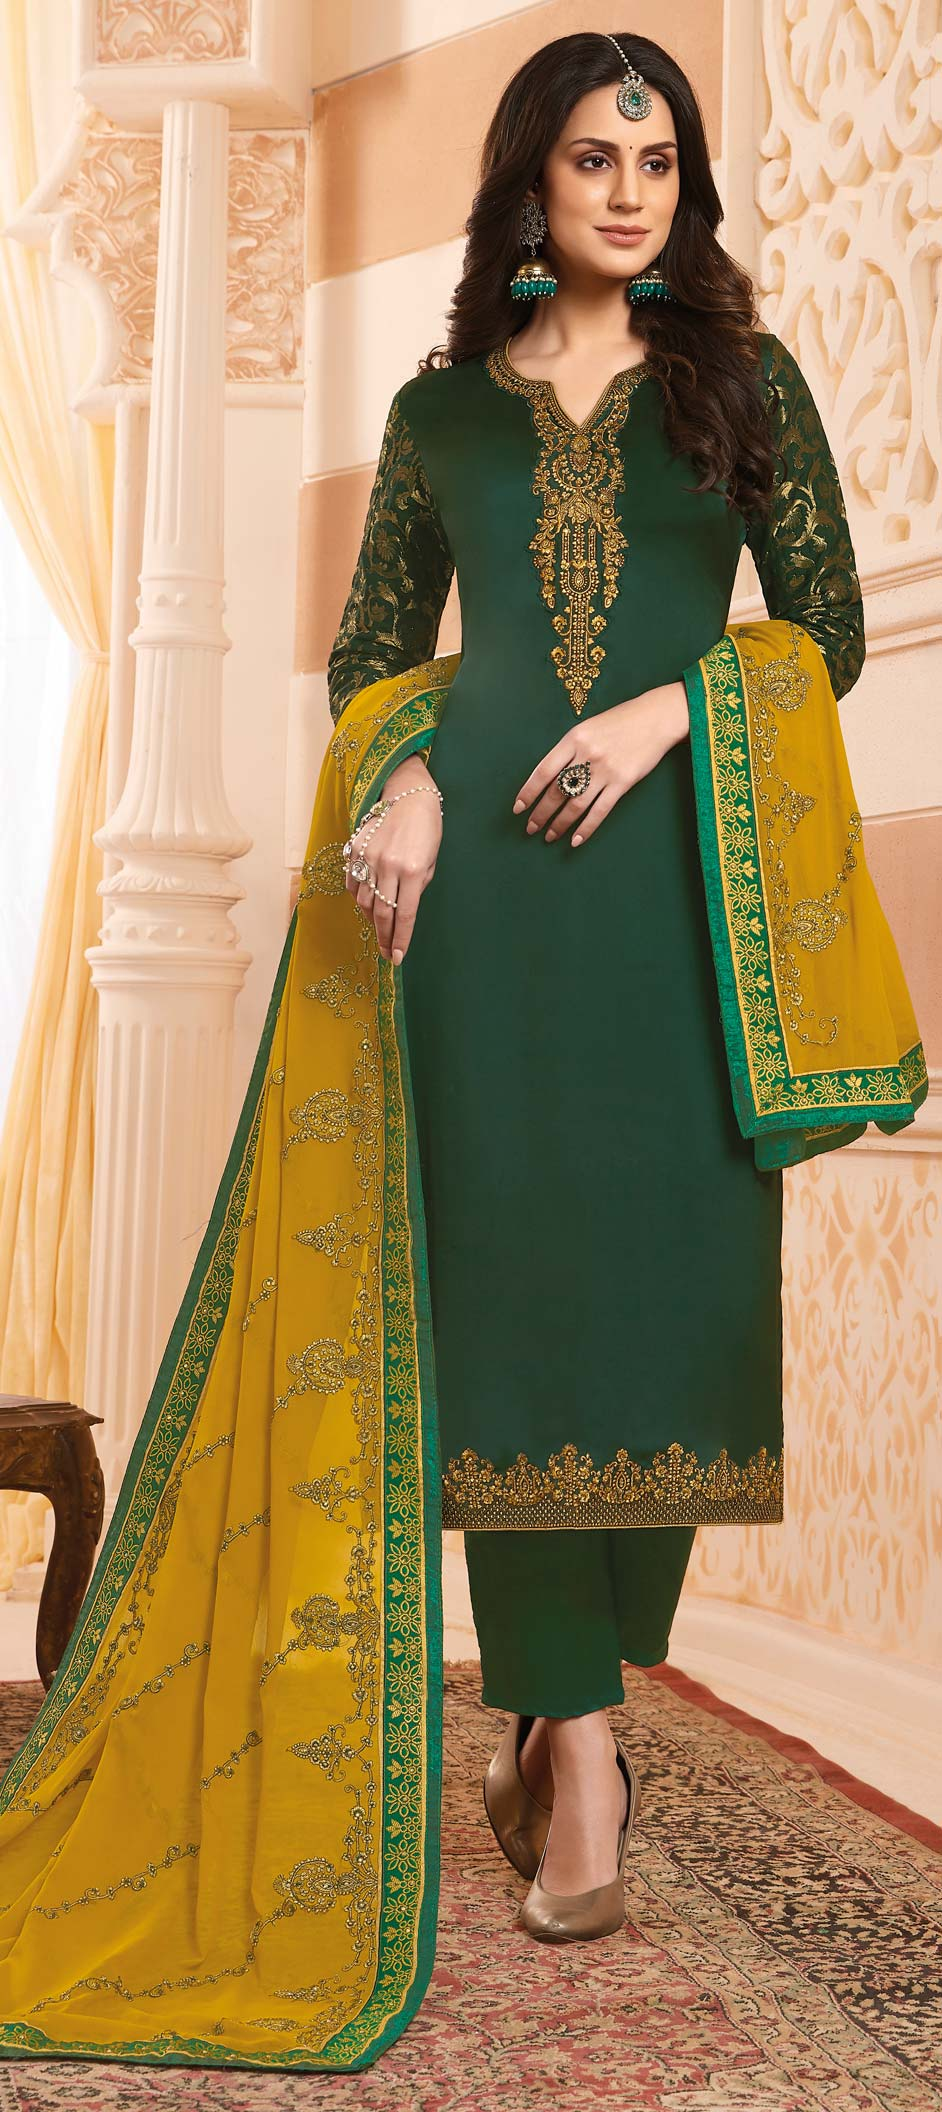 Satin Silk Party Wear Salwar Kameez in Green with Thread work